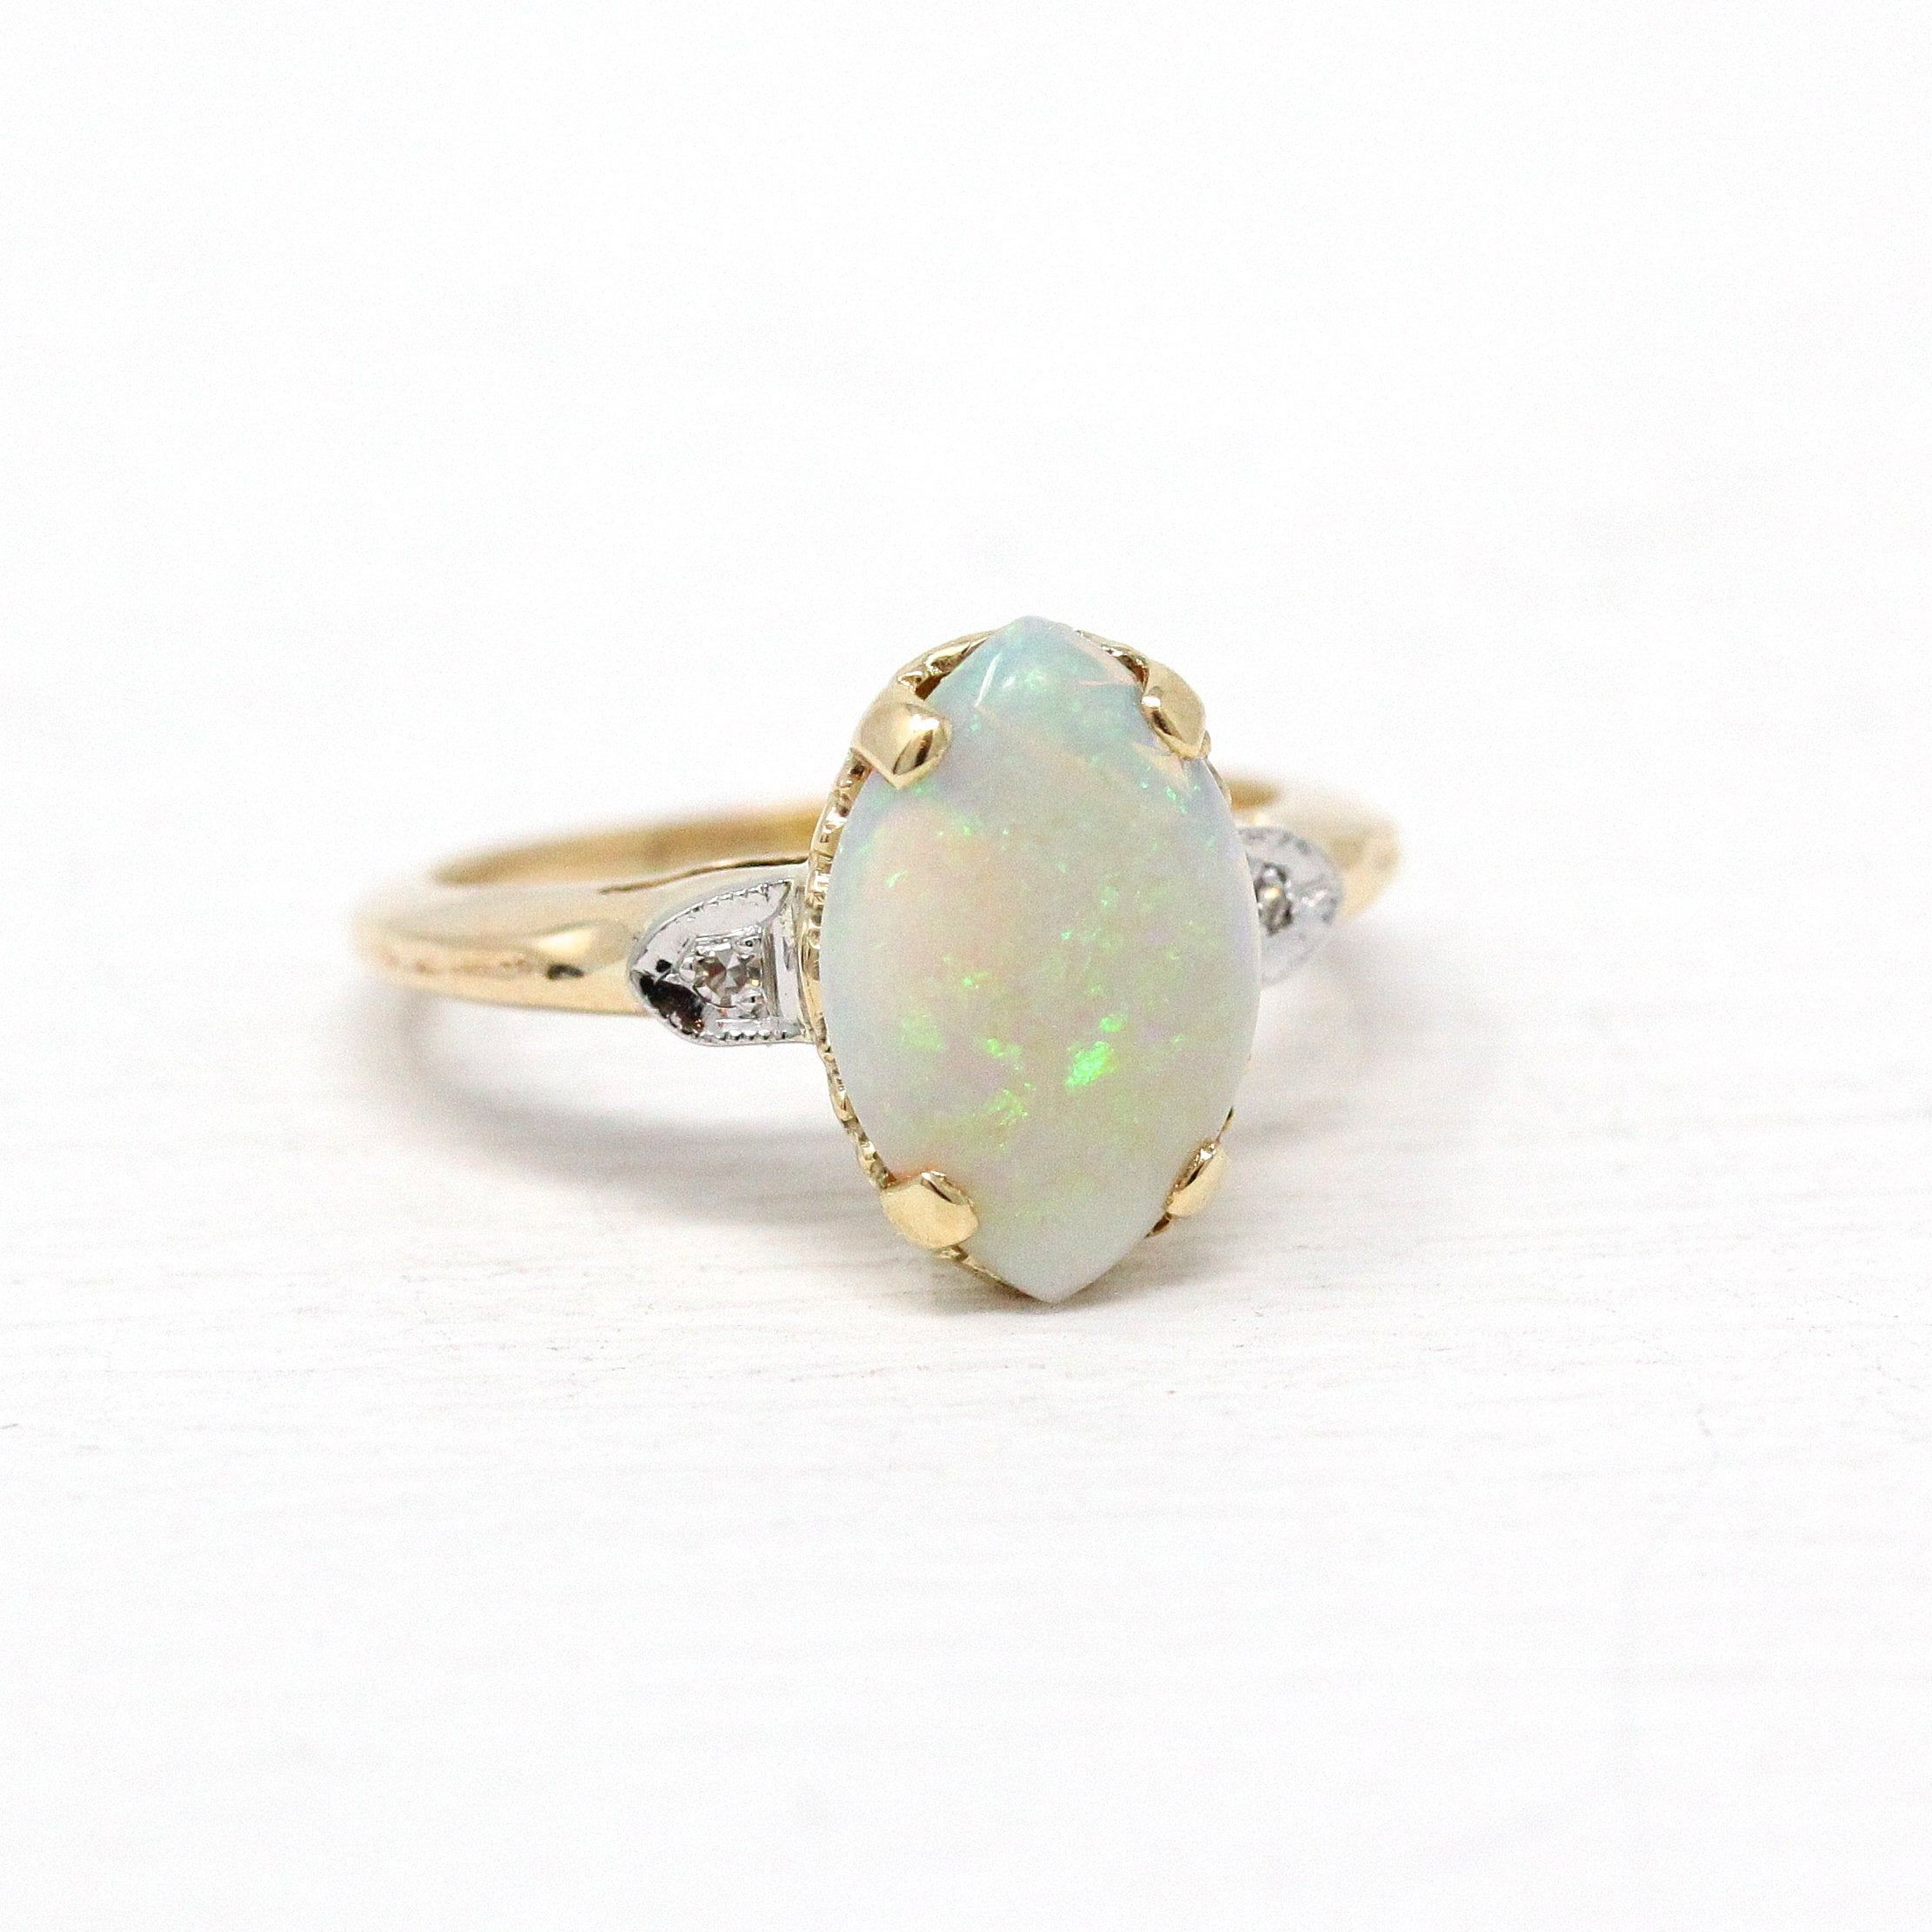 Vintage Opal Ring 10k Rosy Yellow Gold Marquise Genuine Gem Size 4 1 2 October Birthstone Diamond Retro Sig Opal Ring Vintage Retro Jewelry Diamond Outline